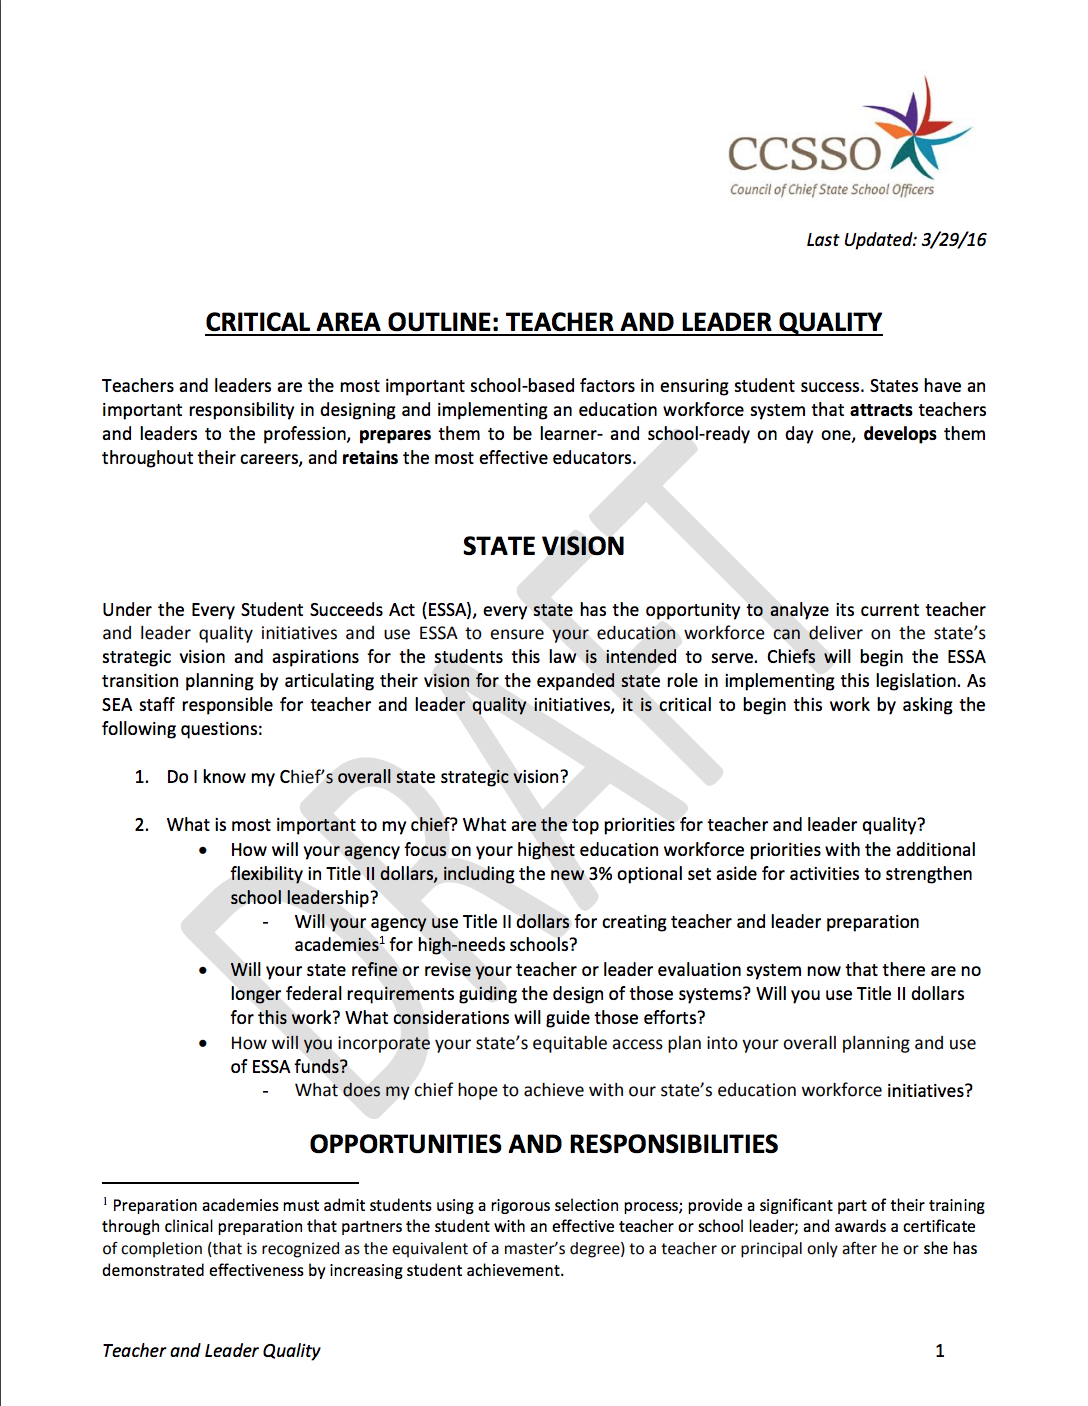 Critical Area Outline - Teacher and Leader Quality page 1